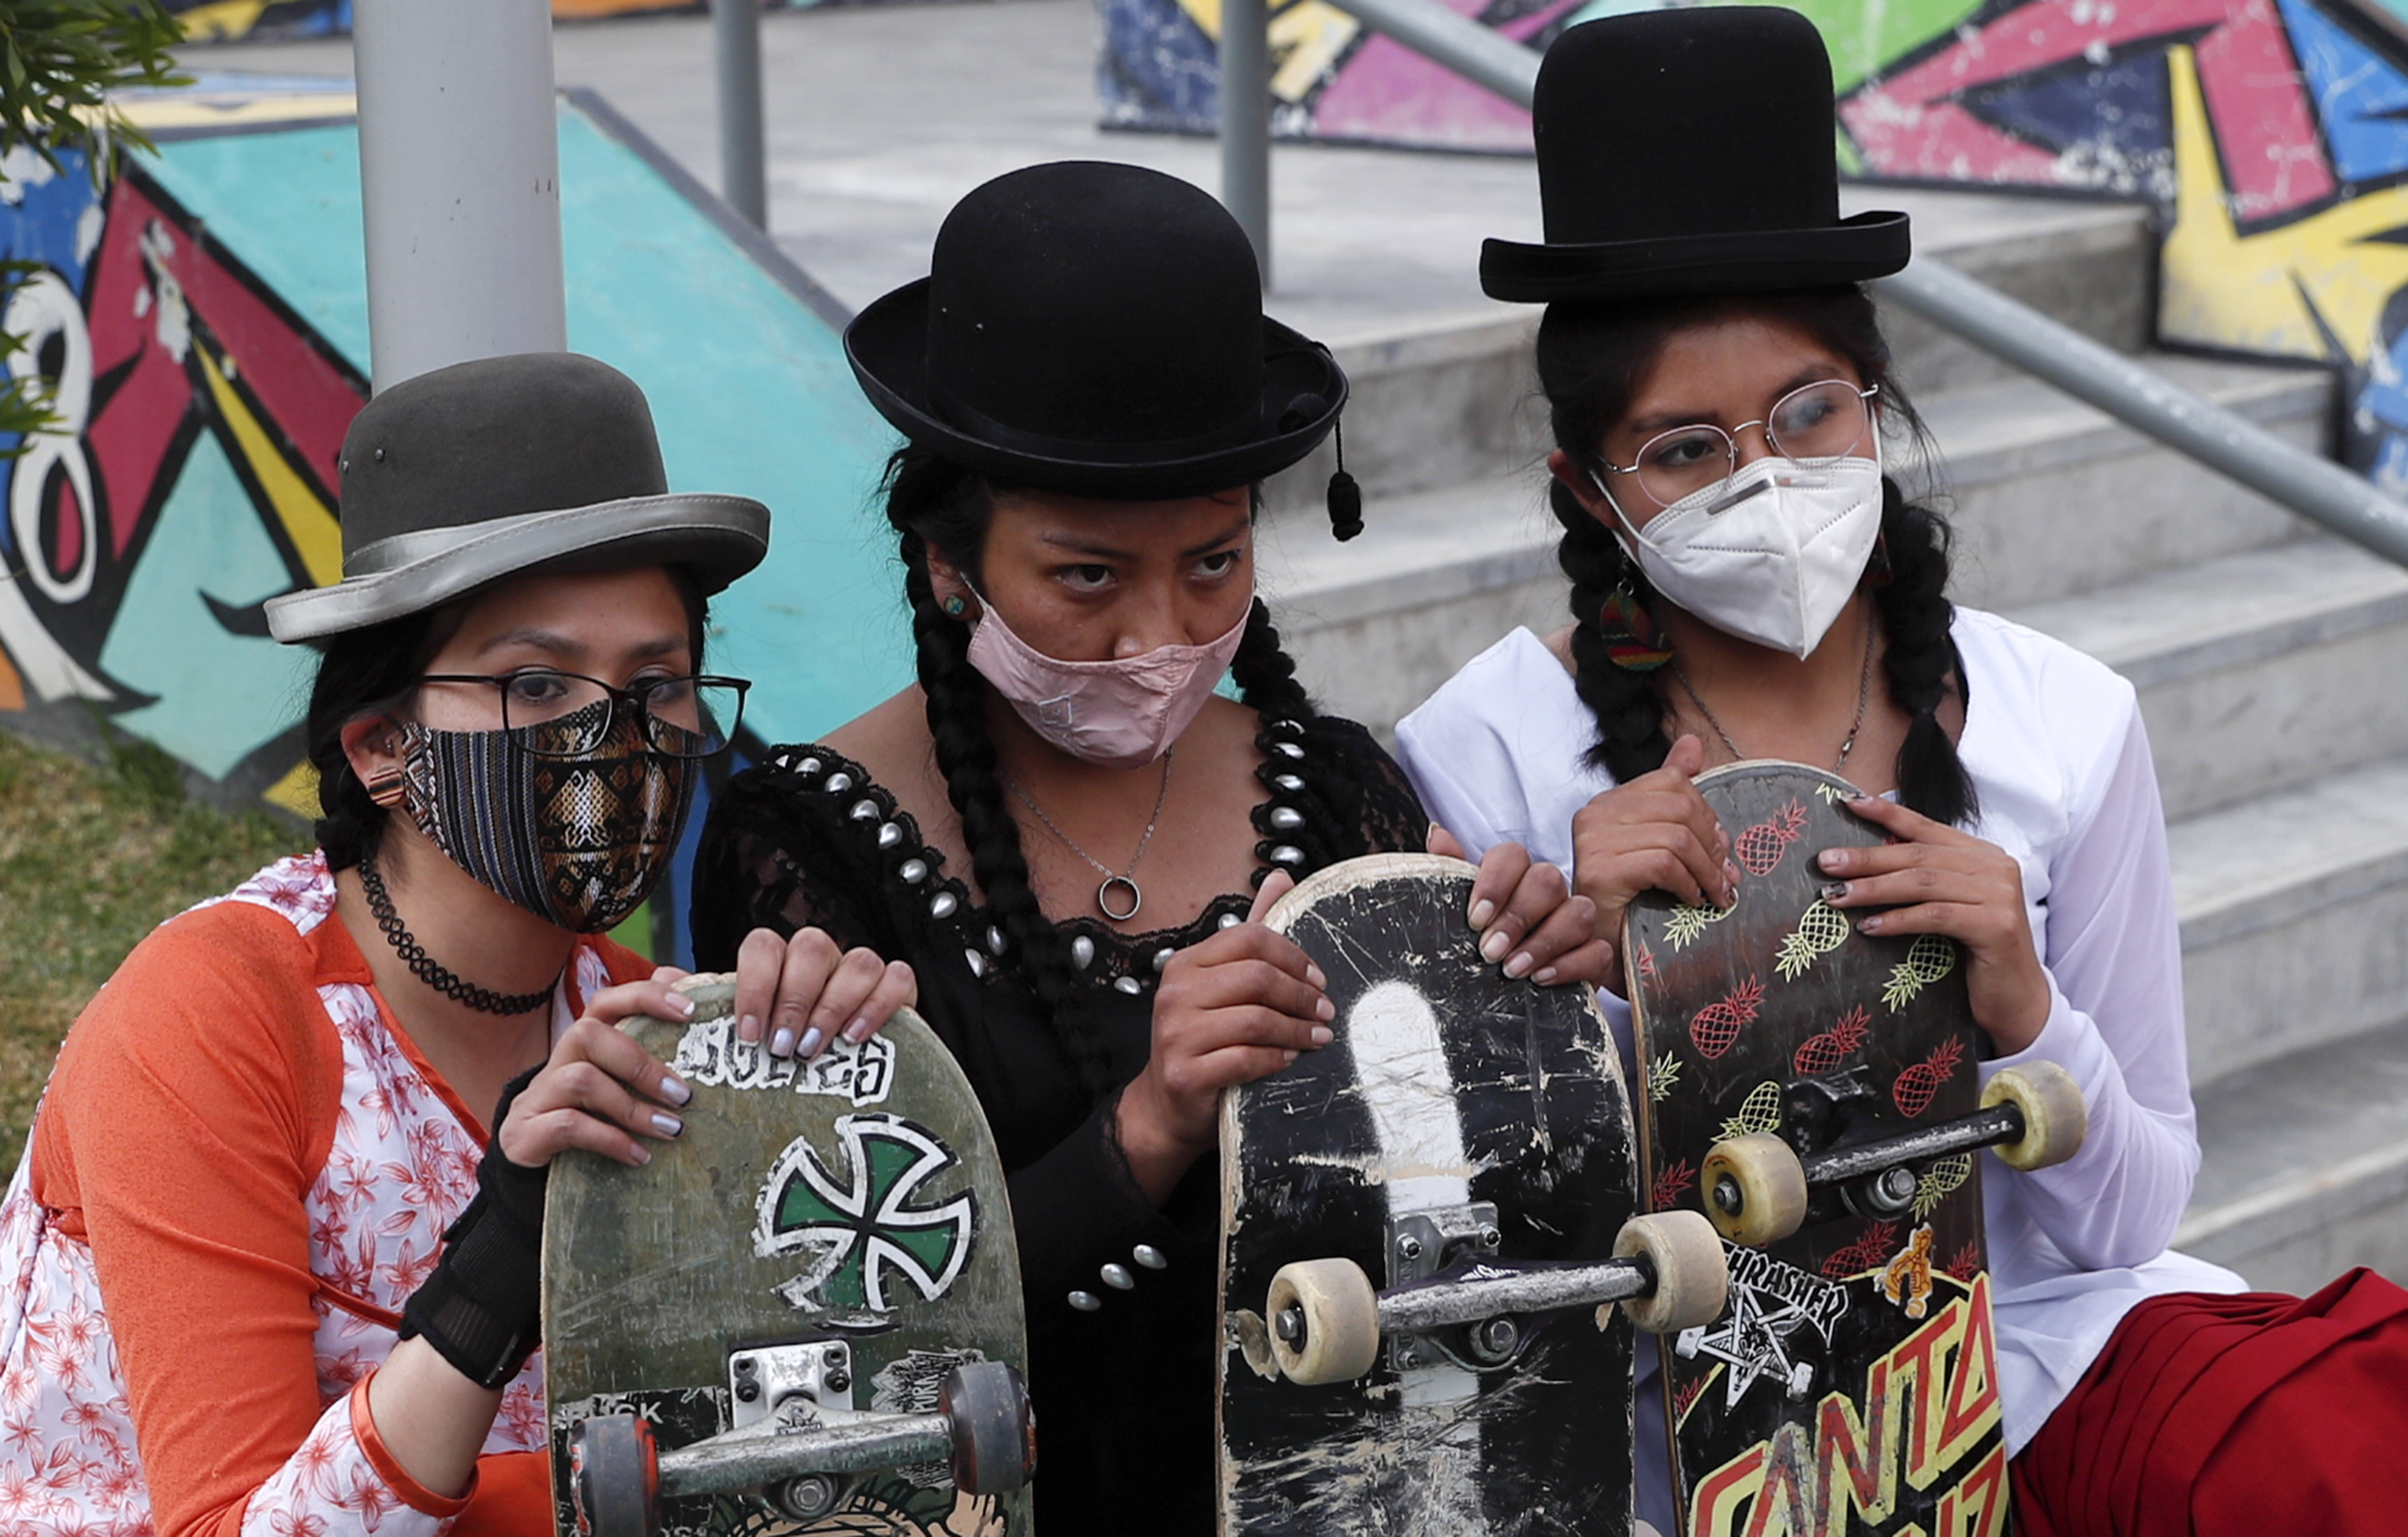 """Yanira Villarreal, left, Ayde Choque, center, and Milenda Limachi, wearings masks amid the COVID-19 pandemic and dressed as a """"Cholita"""" pose for a photo with their skateboards during a youth talent show in La Paz, Bolivia, Wednesday, Sept. 30, 2020. Young women called """"Skates Imillas,"""" using the Aymara word for girl Imilla, use traditional Indigenous clothing as a statement of pride of their Indigenous culture while playing riding their skateboards. (AP Photo/Juan Karita)"""